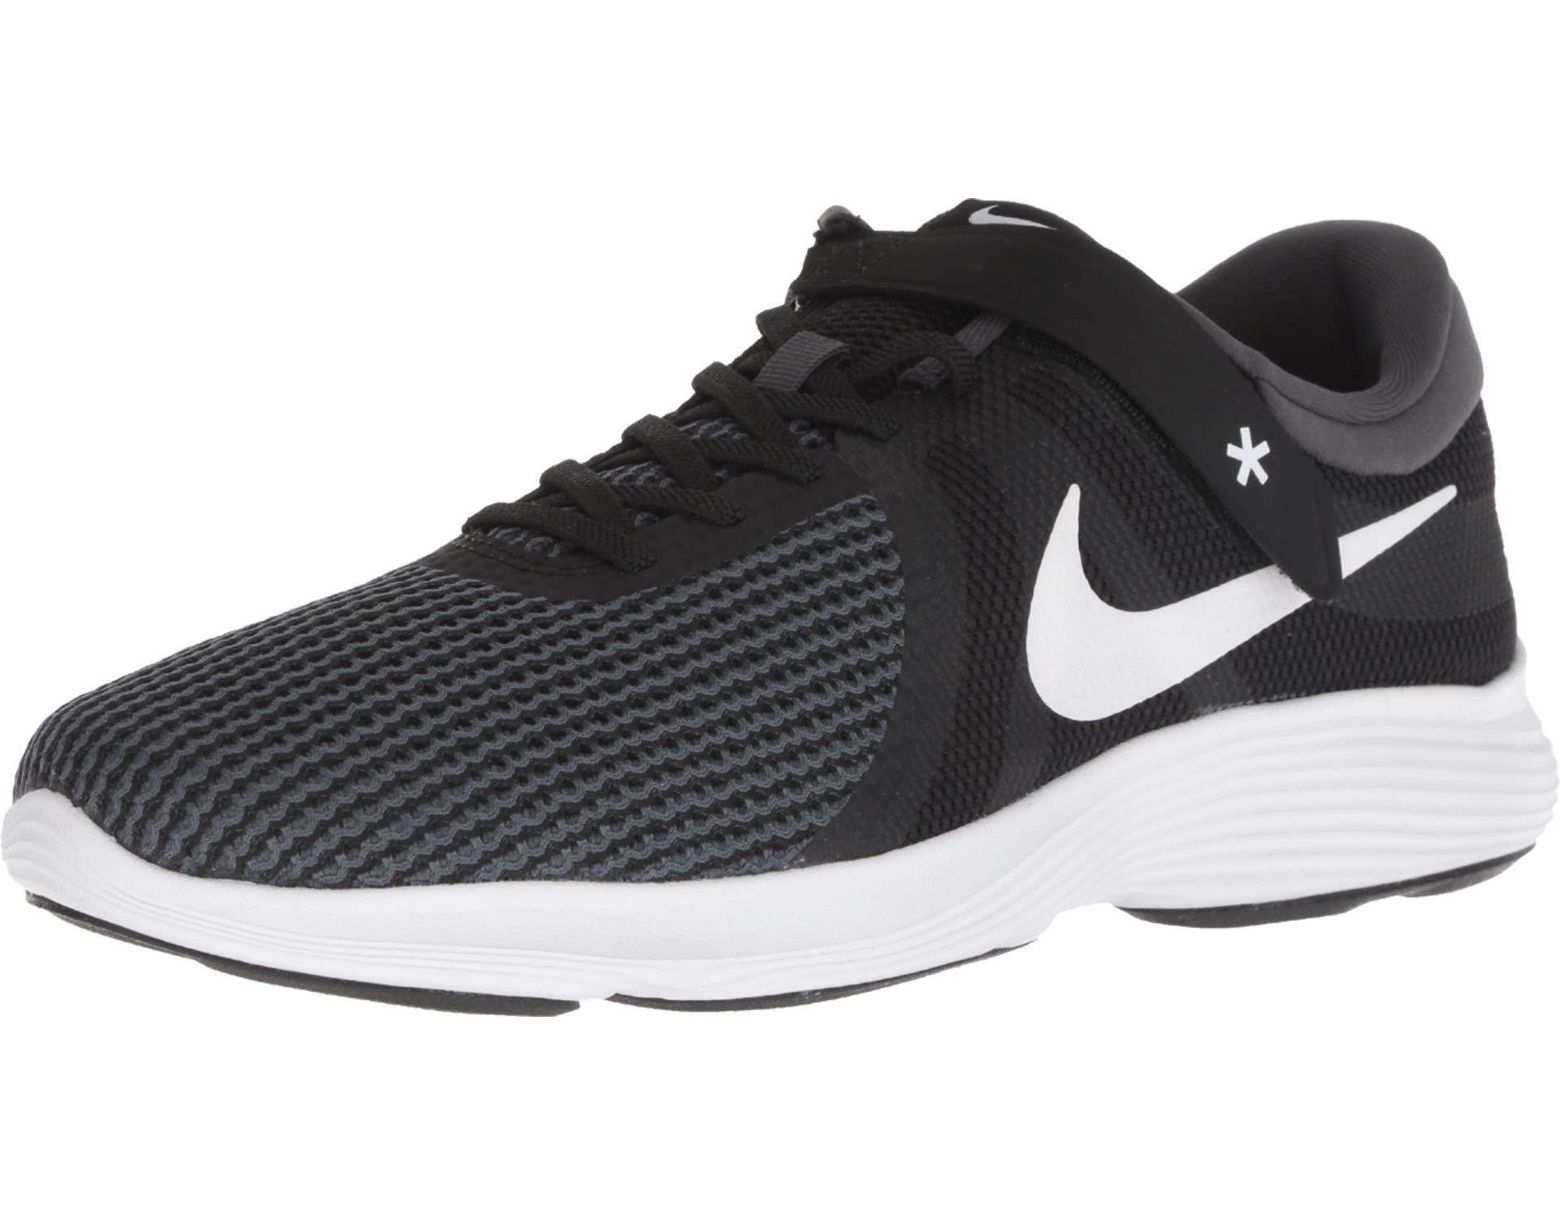 8e9bfab5582c6 Nike Revolution 4 Flyease in Black for Men - Save 25% - Lyst